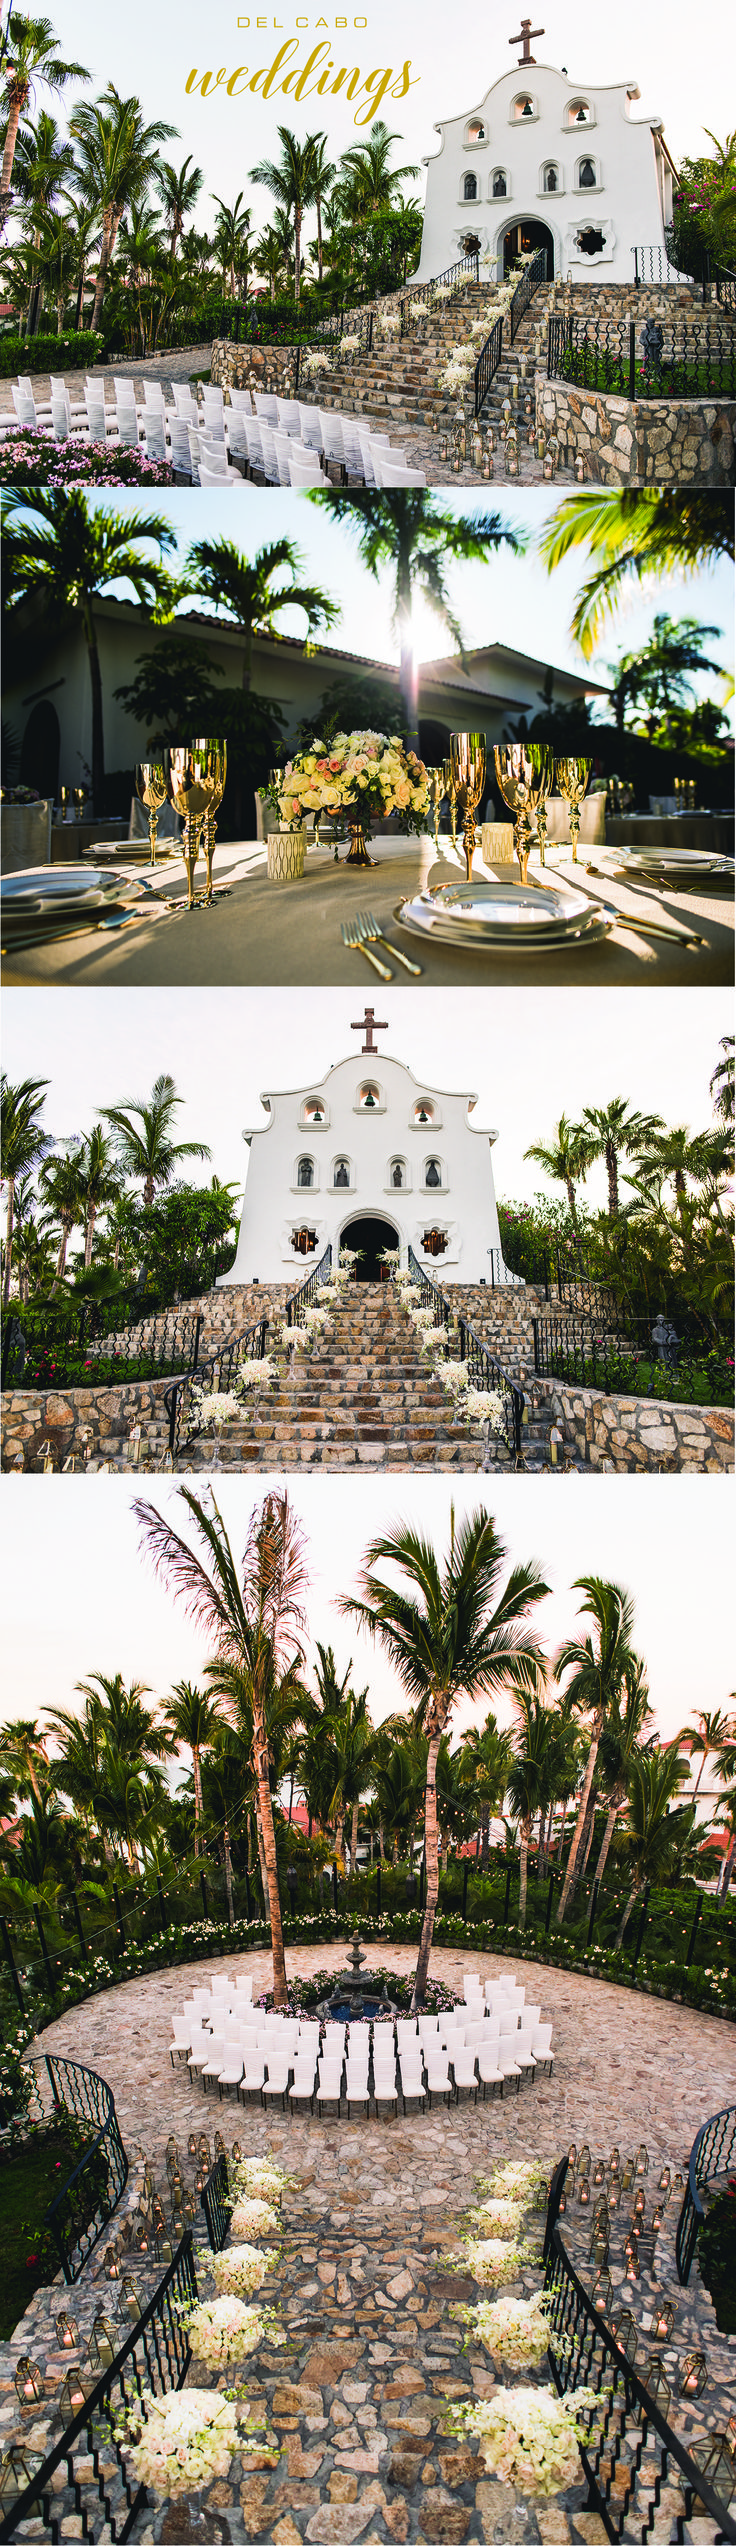 Beautiful wedding ceremonies in Los Cabos! Our metallic theme will blow your mind! Check out our board for more inspiration!